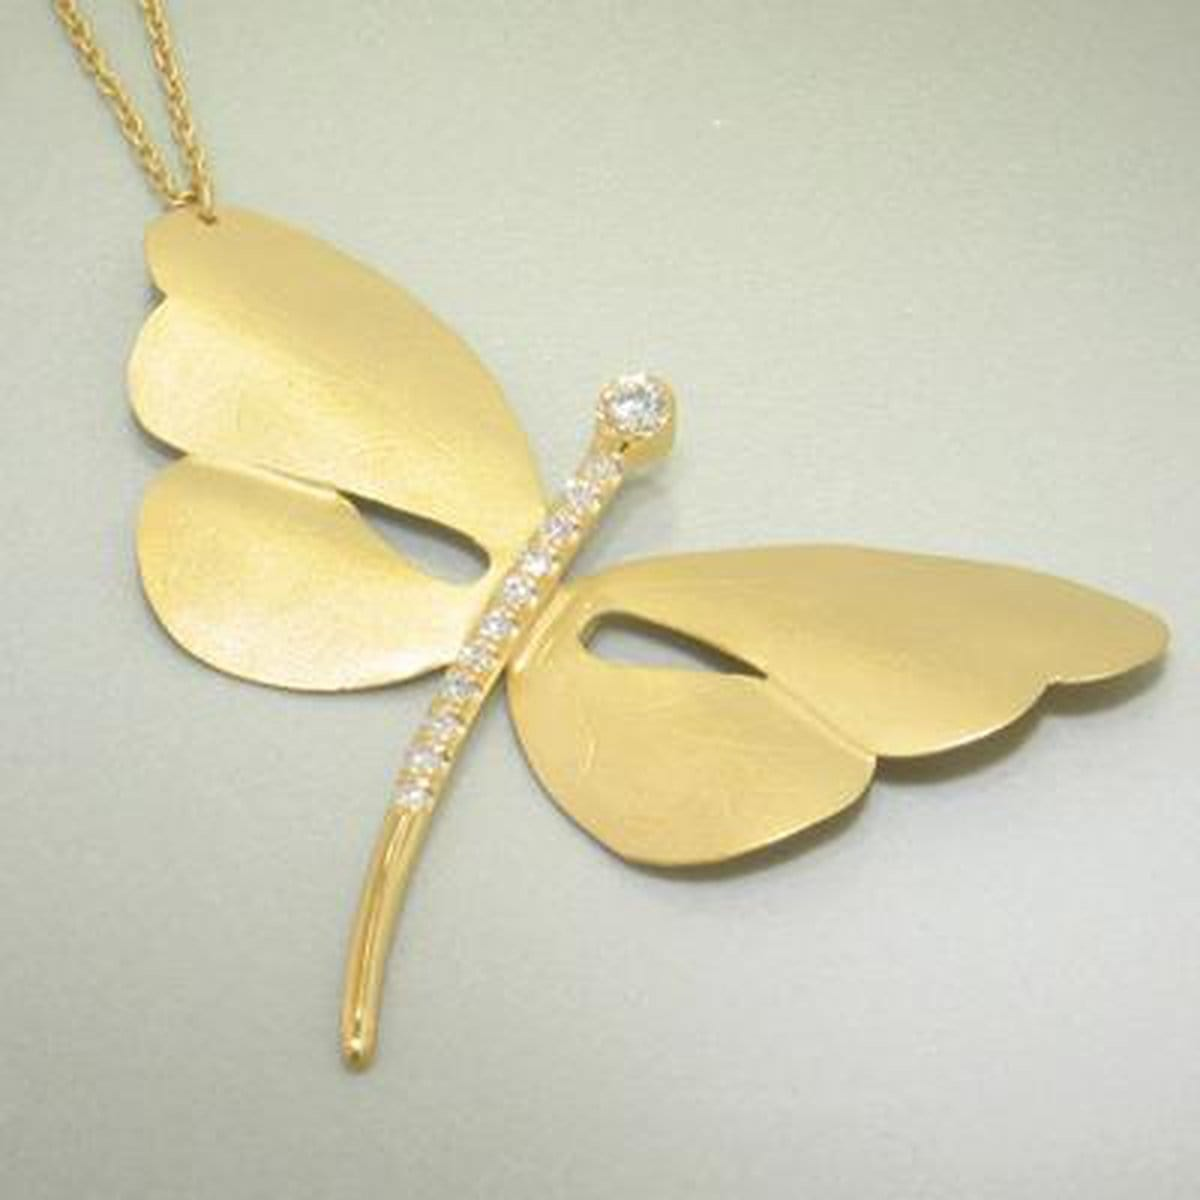 Marika Diamond & 14k Gold Necklace - M4125-Marika-Renee Taylor Gallery